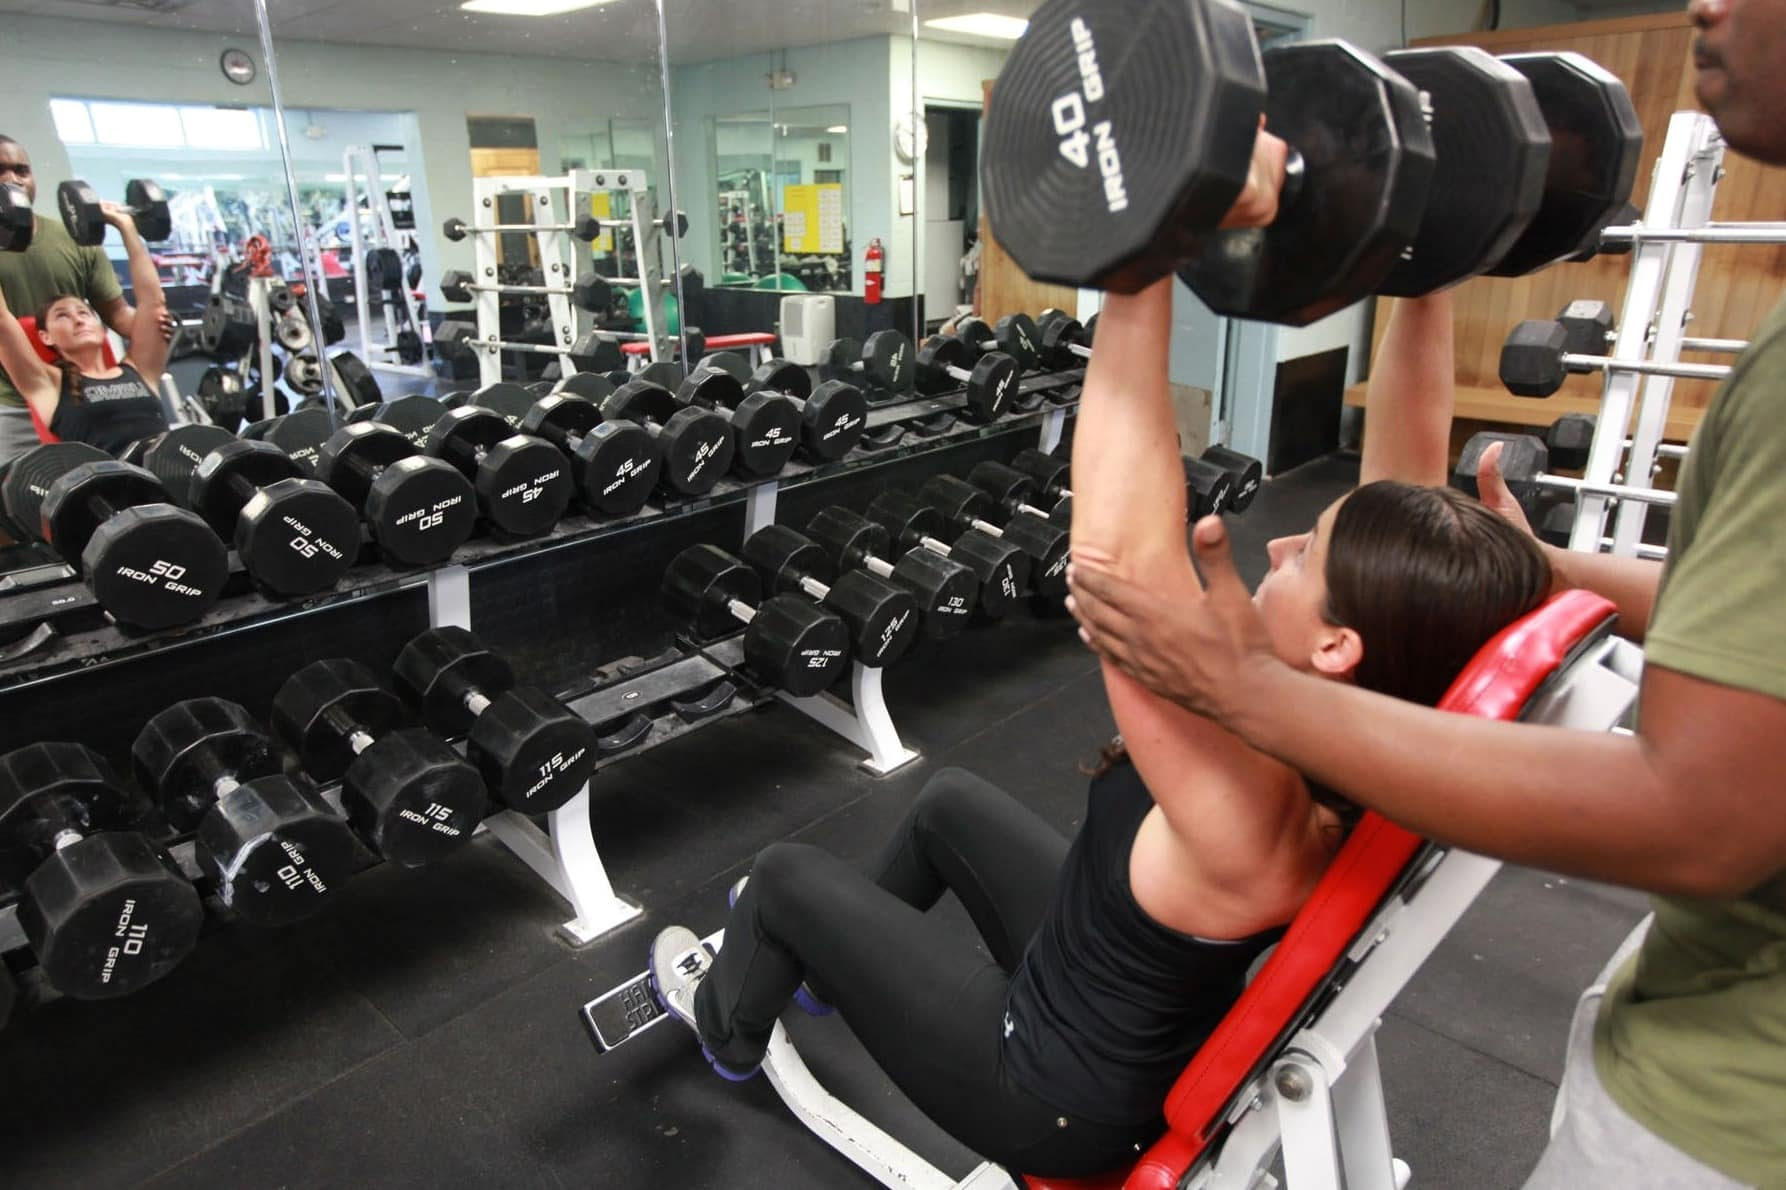 Free picture: exercise, gym, pretty girl, young woman, strength, dumbbell,  fitness, athlete